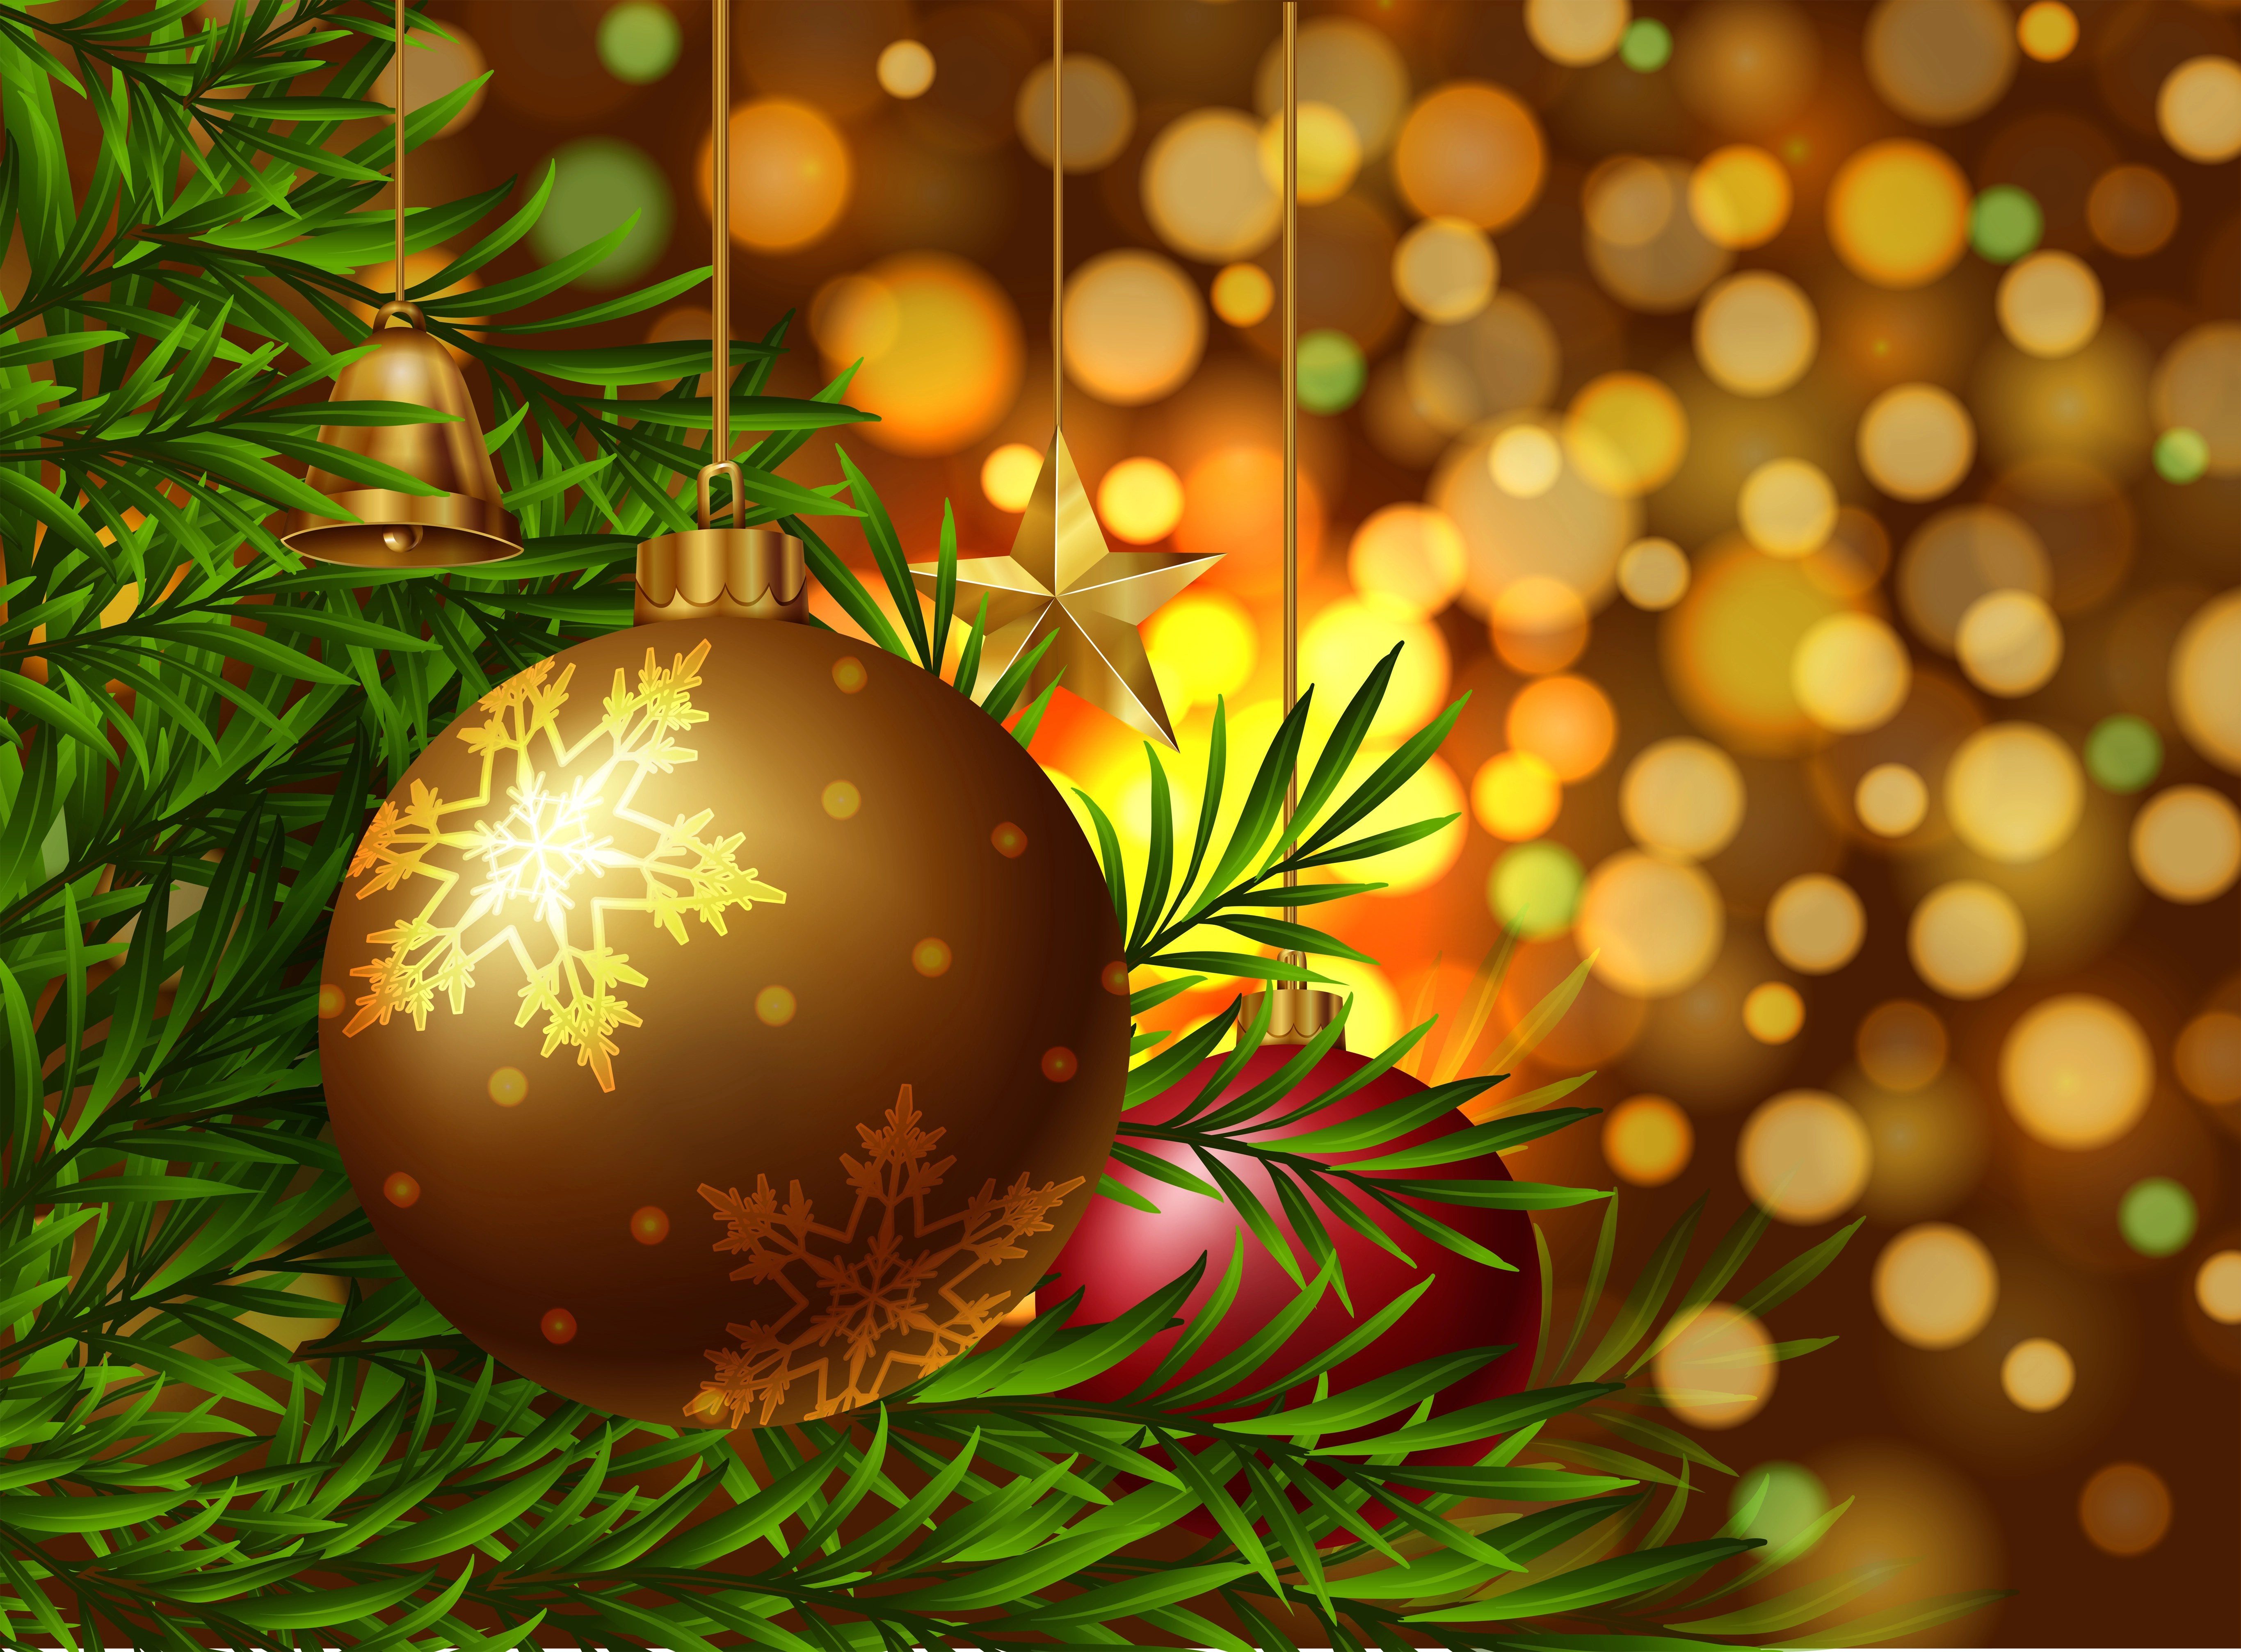 Christmas Theme Background With Ornaments On The Tree